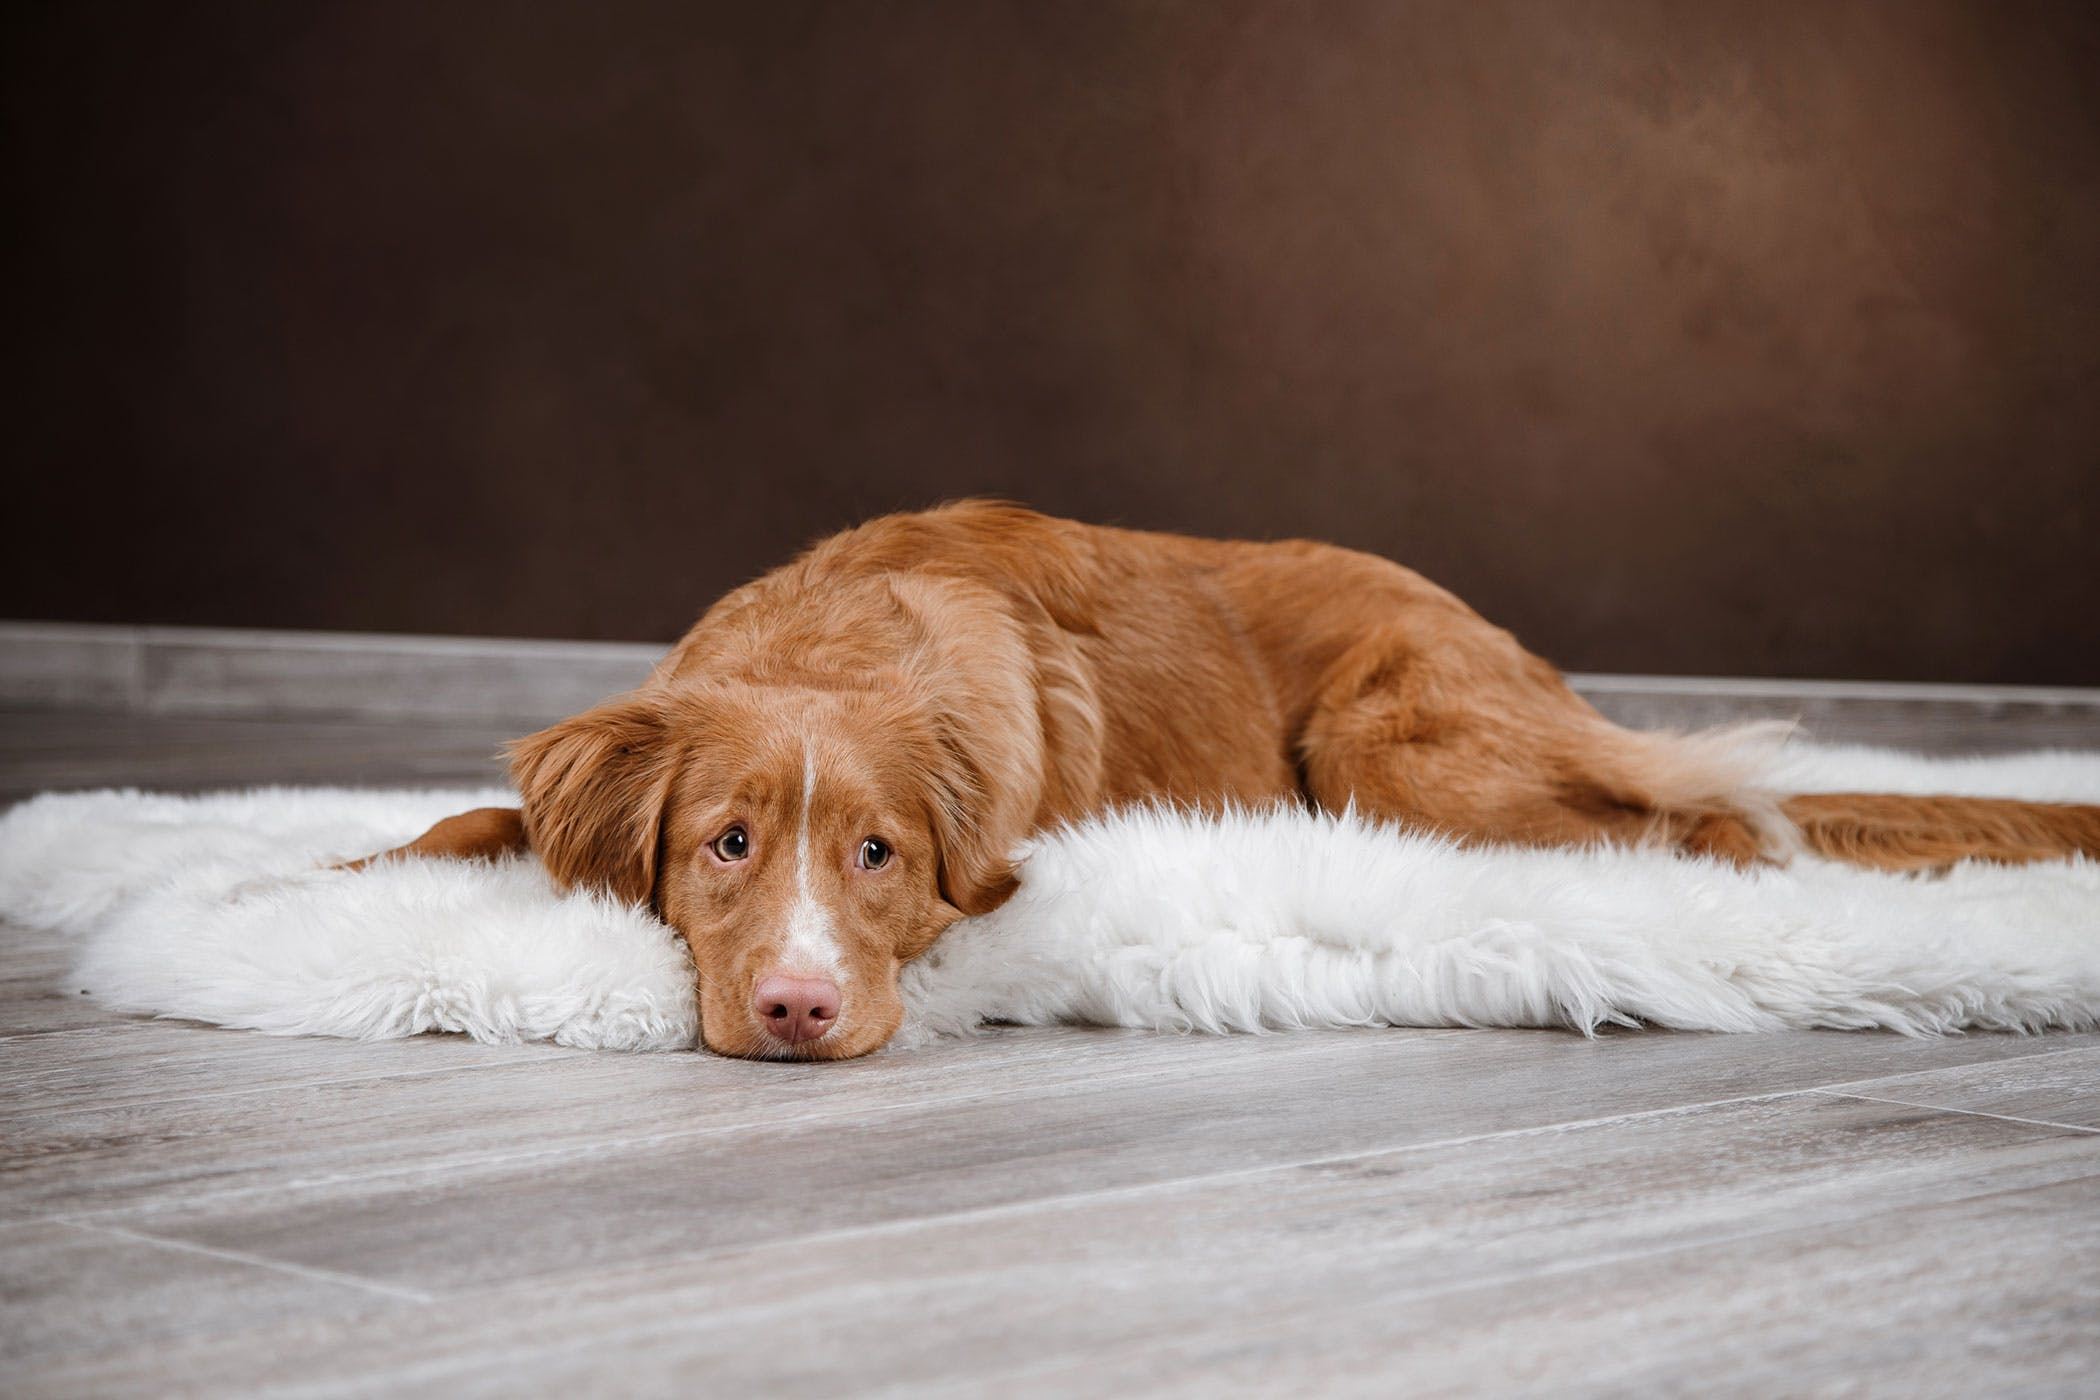 Paralysis due to Spinal Cord Lesion in Dogs - Symptoms